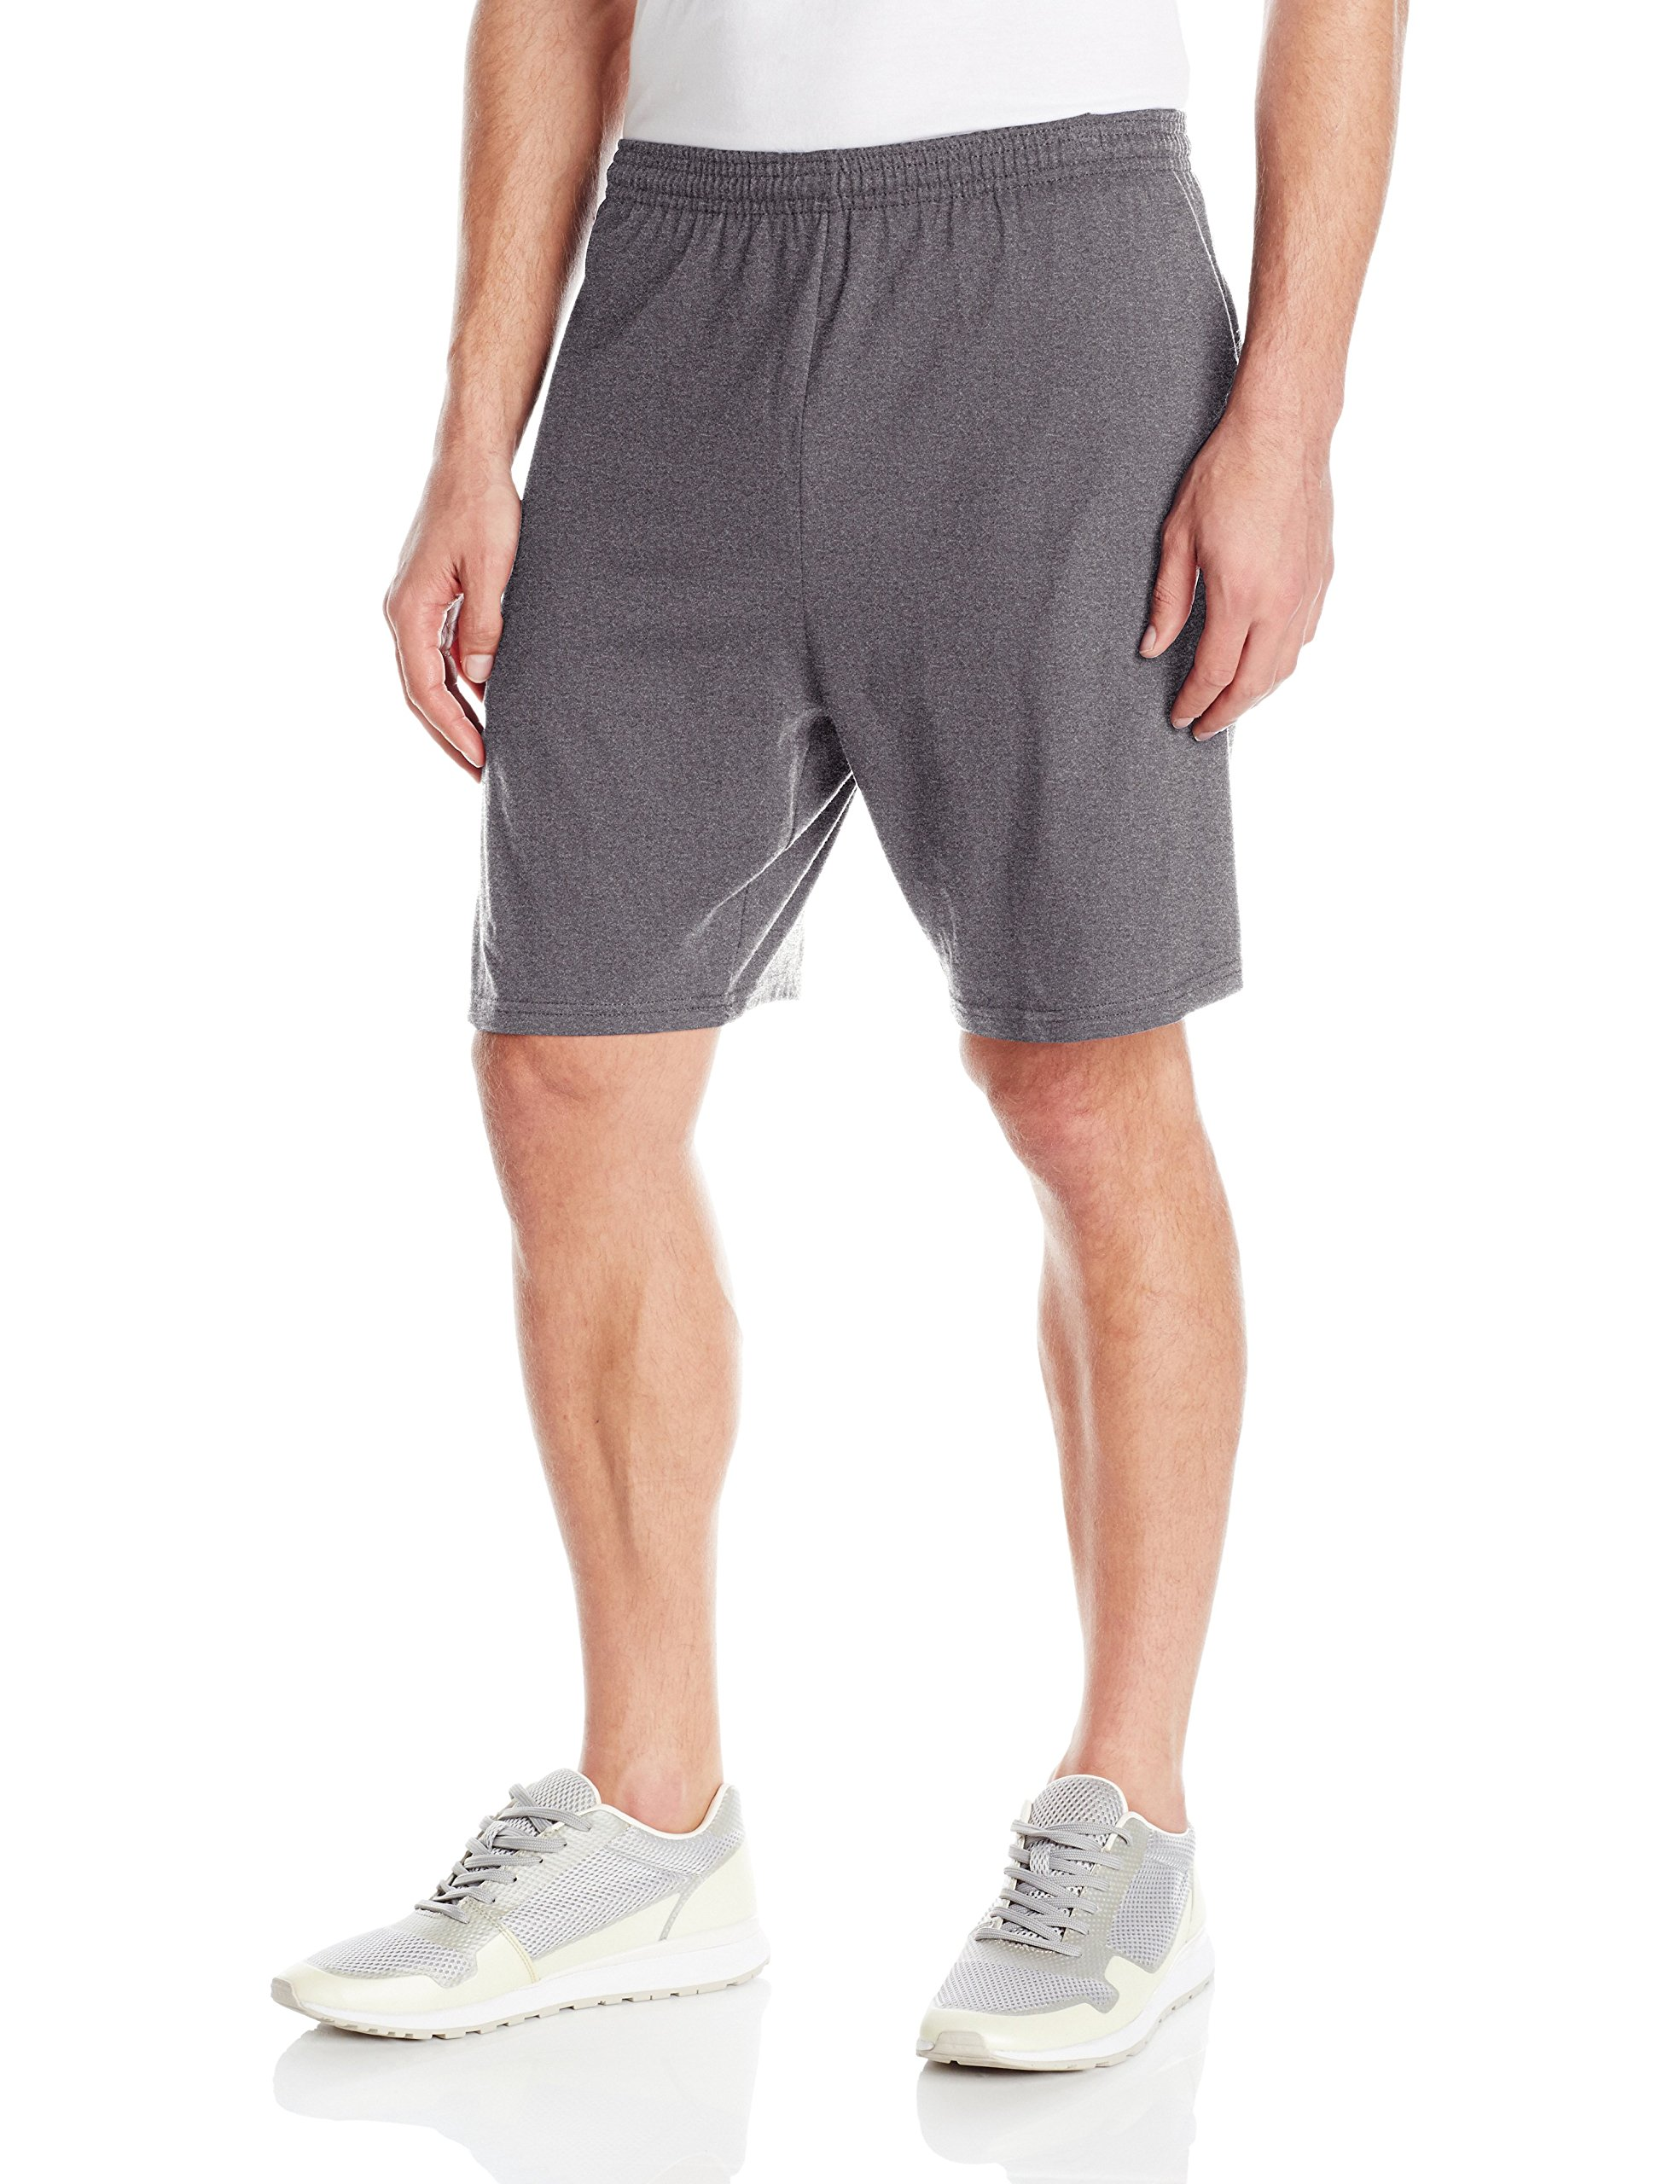 Hanes Men's Jersey Short with Pockets, Charcoal Heather, X-Large